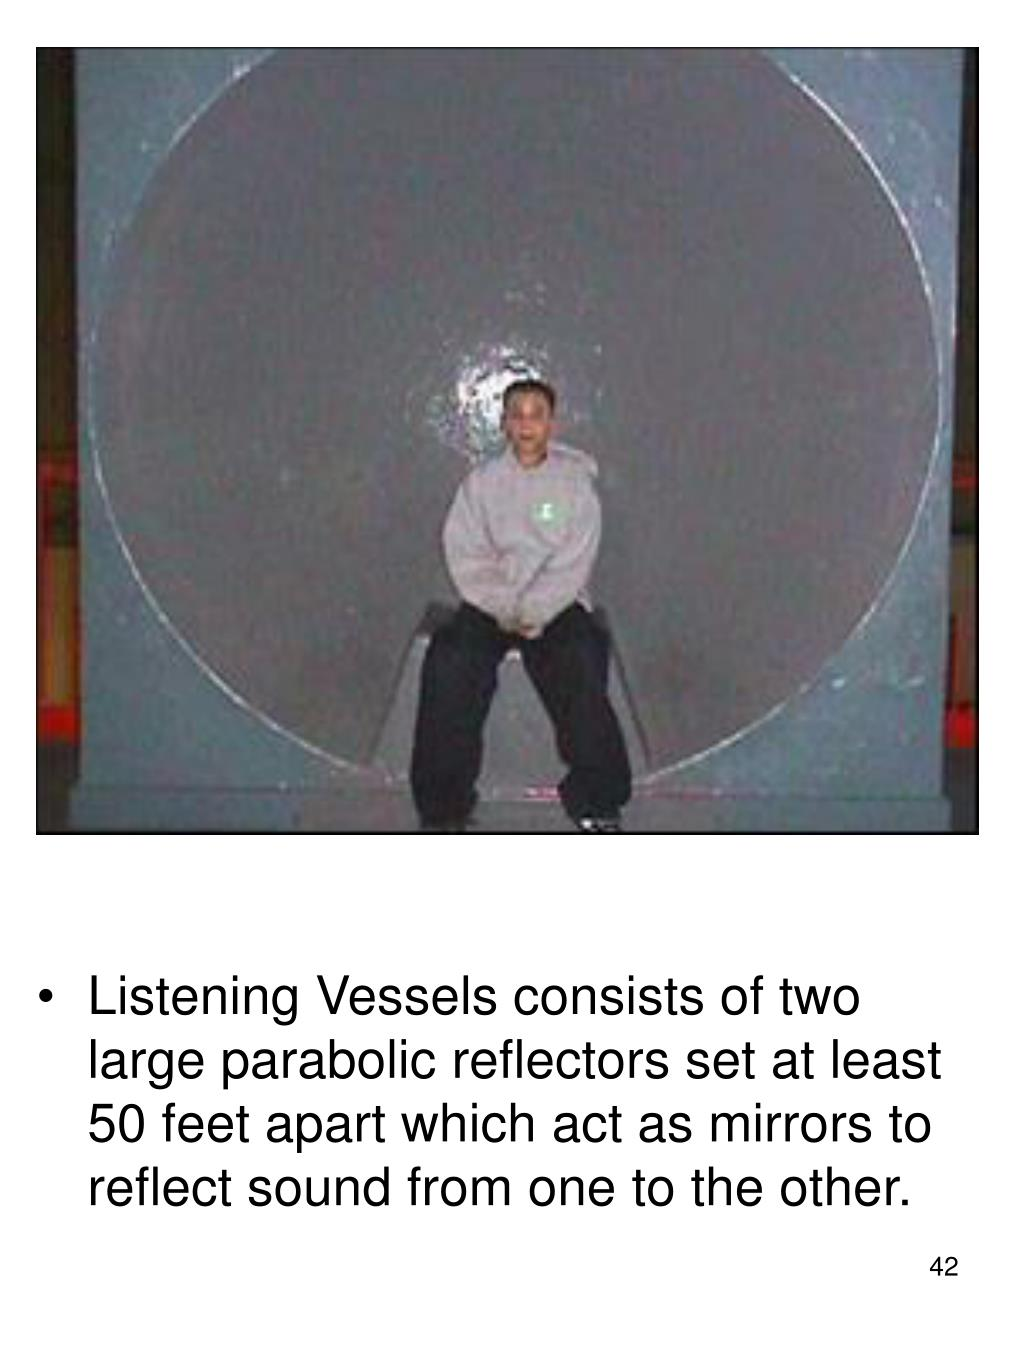 Listening Vessels consists of two large parabolic reflectors set at least 50 feet apart which act as mirrors to reflect sound from one to the other.